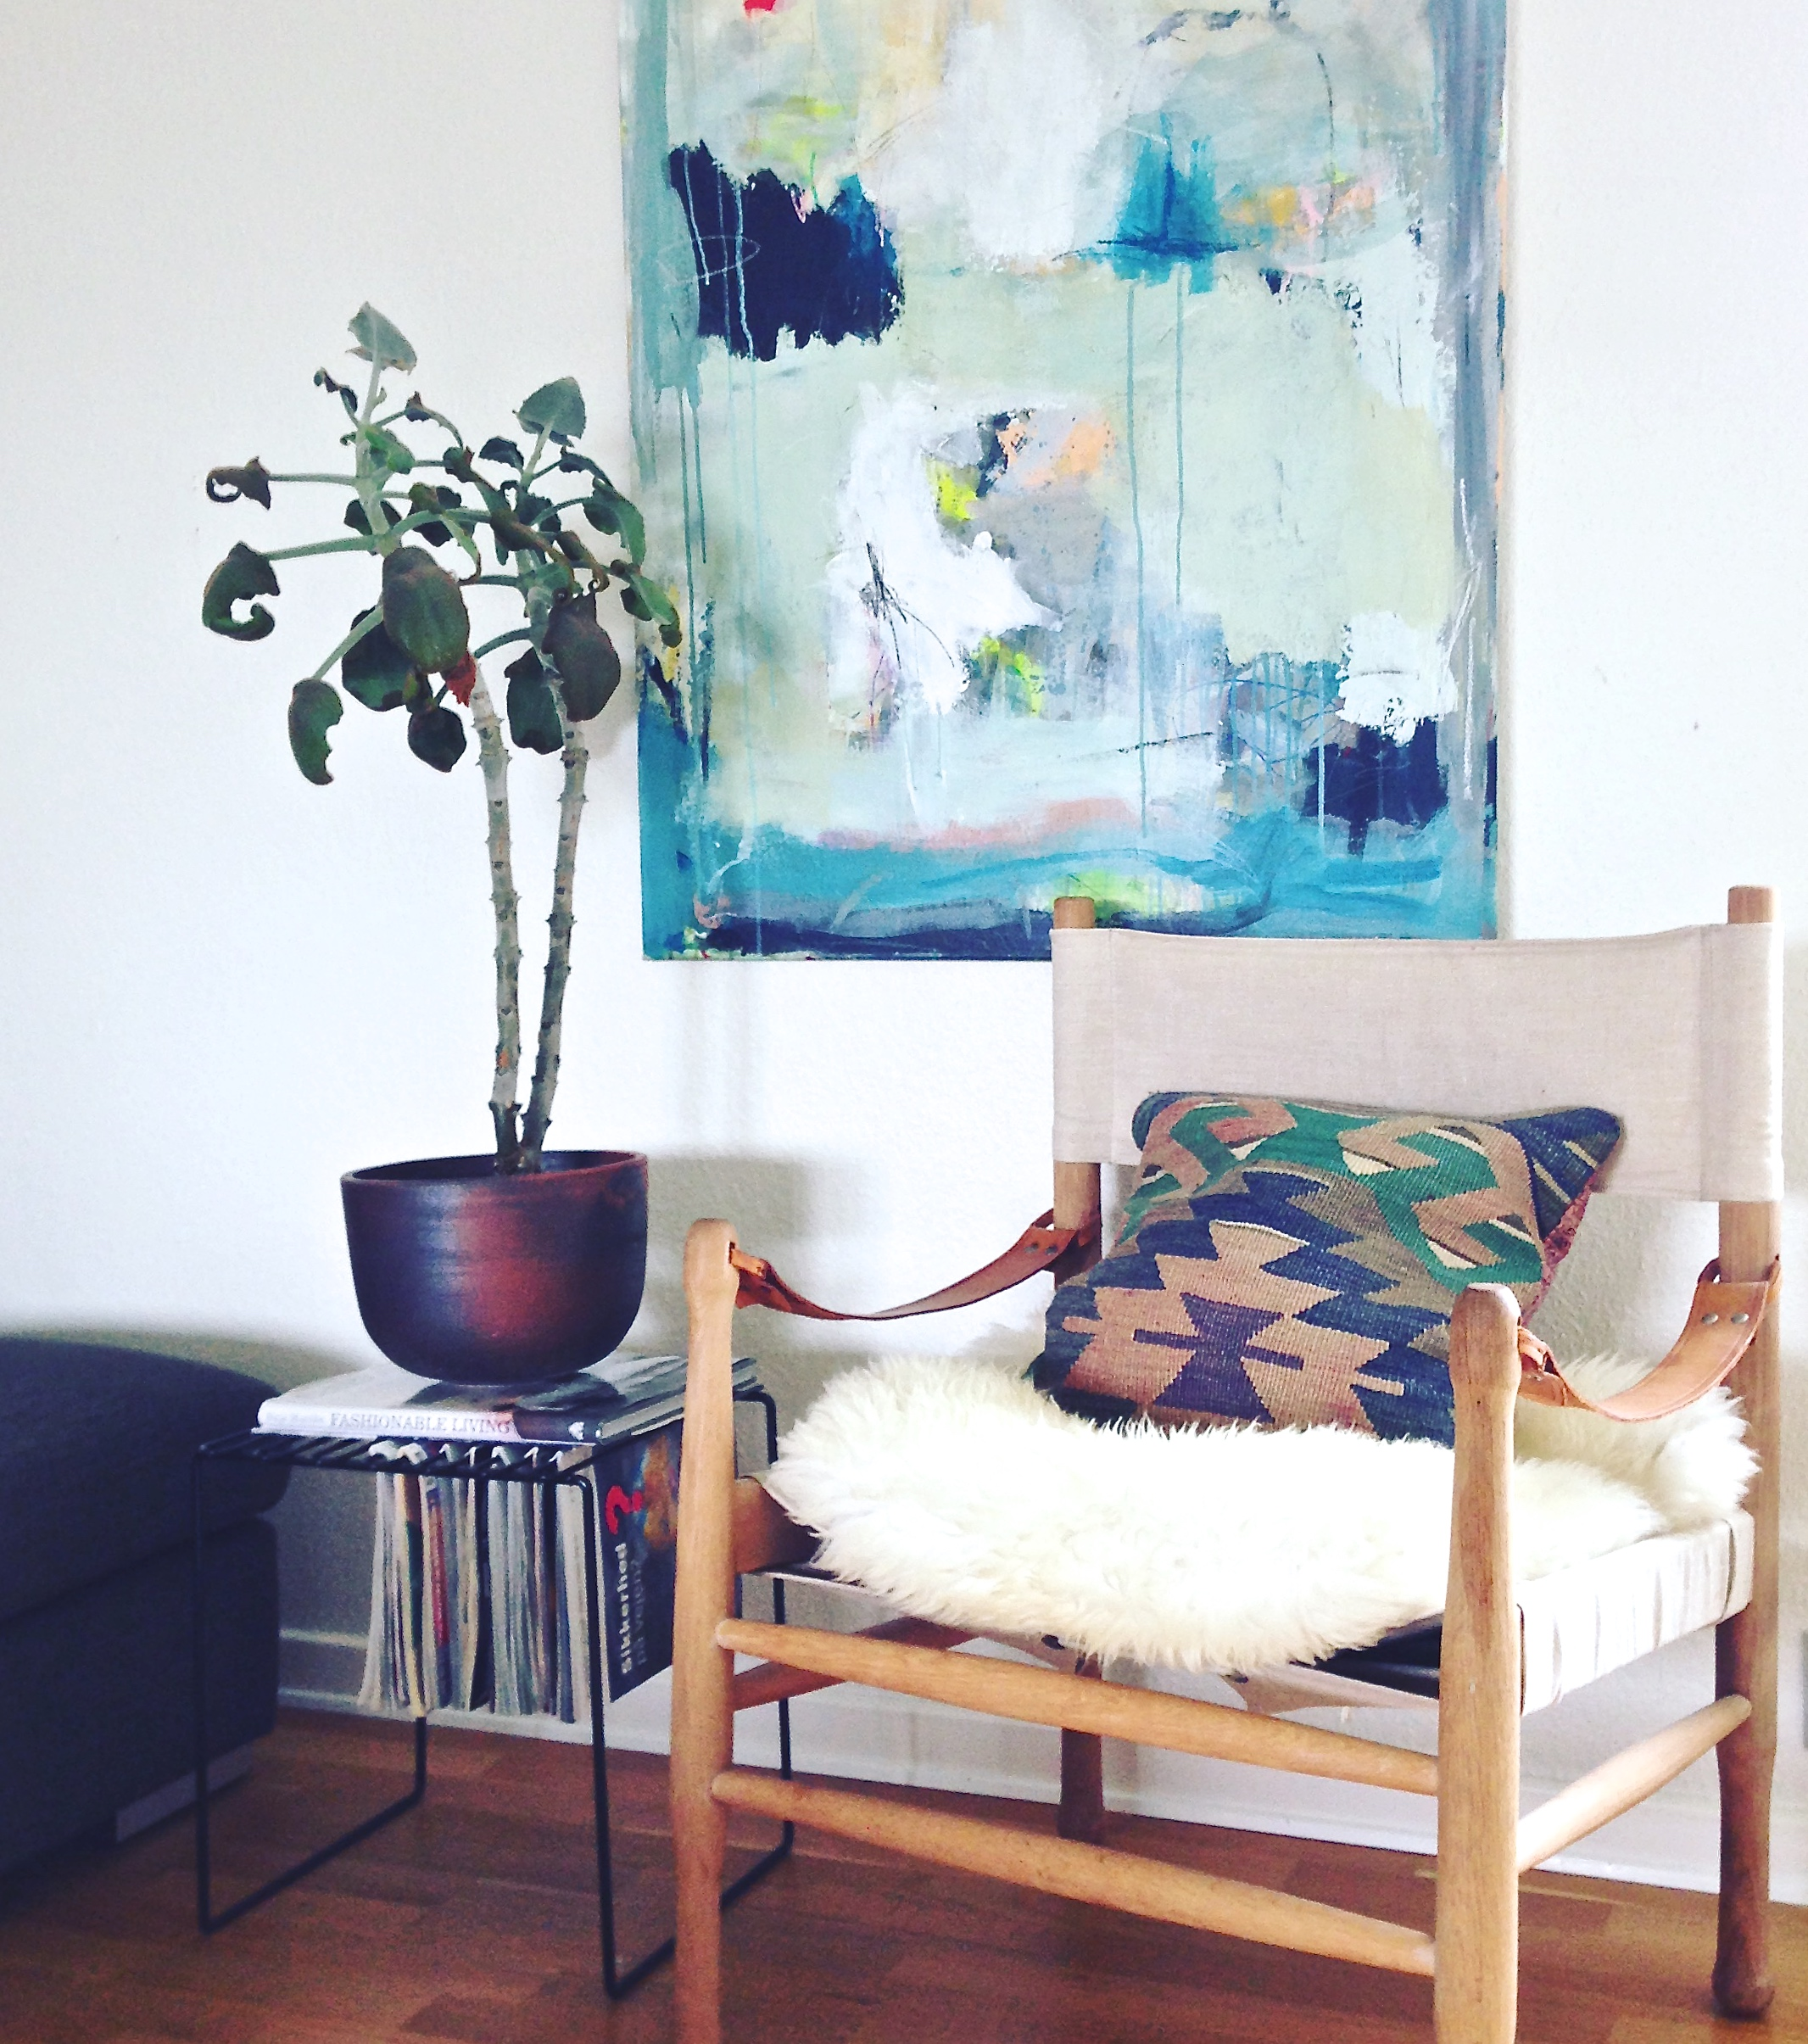 Line's grandfather was a cabinet maker and hand crafted this chair for his wife. After she passed, this family heirloom became a special addition to Line's home. Her colourful artwork makes this corner in the family room so welcoming.